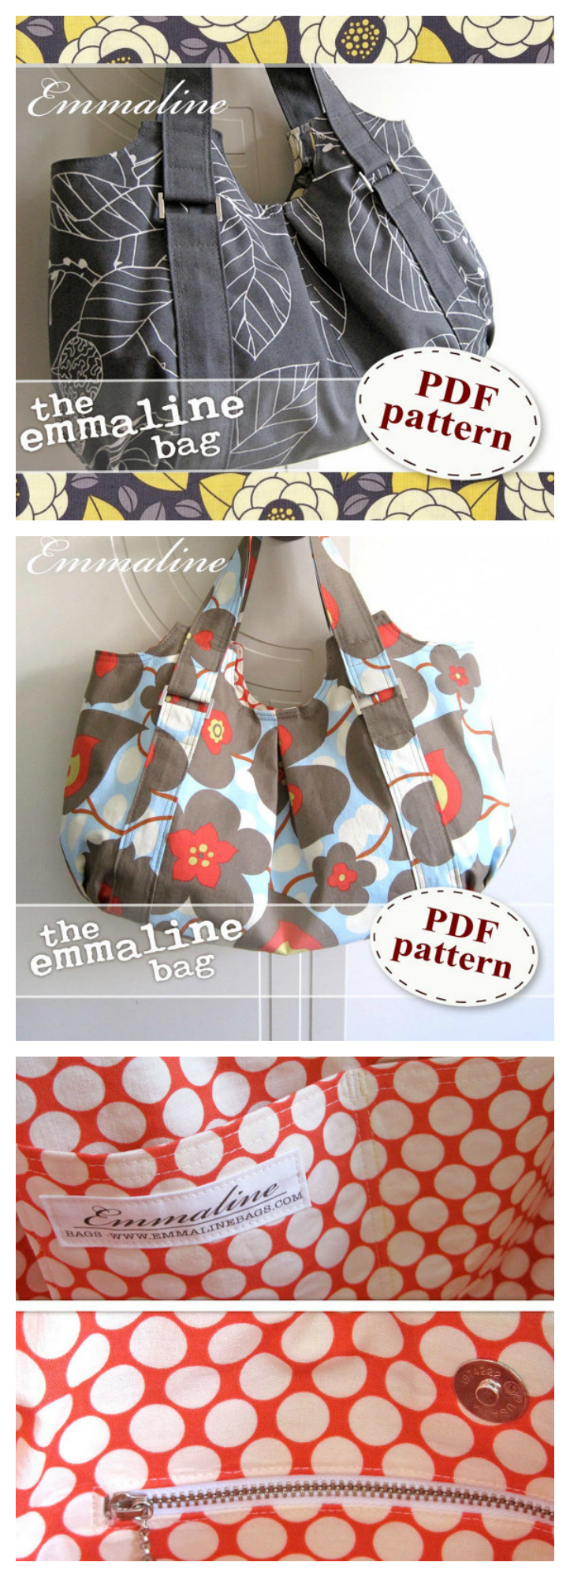 You can make the Emmaline Bag with the extremely comprehensive PDF downloadable pattern. This stylish handbag is extremely practical, modern, classy and very spacious. You can carry all of your essentials and keep your keys, phone or wallet tucked away in one of the 3 optional inside pockets.